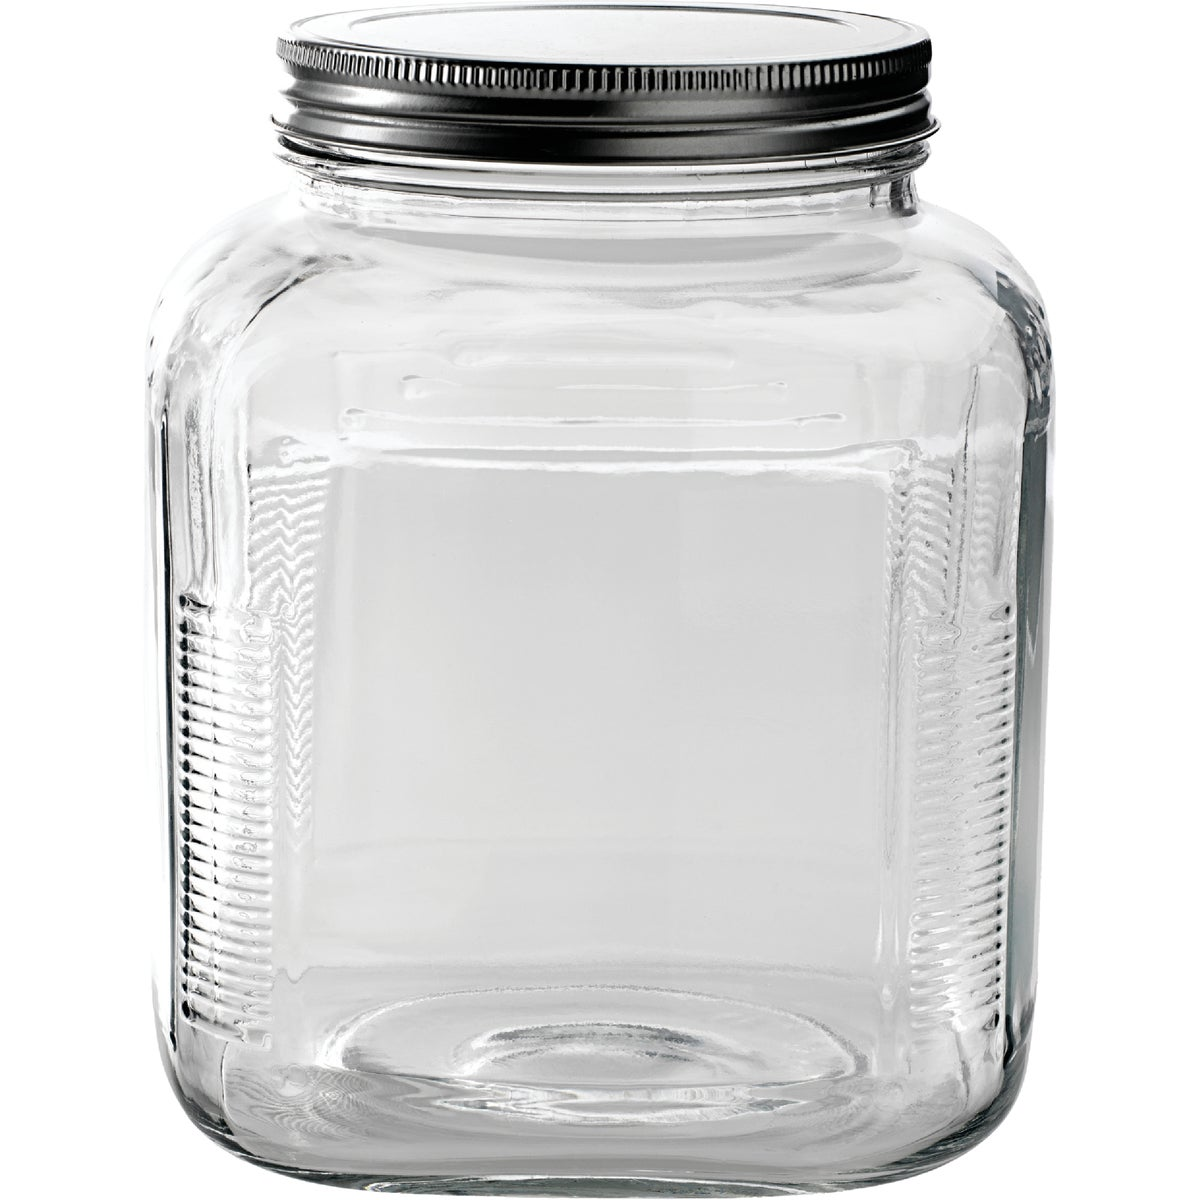 GALLON CRACKER JAR